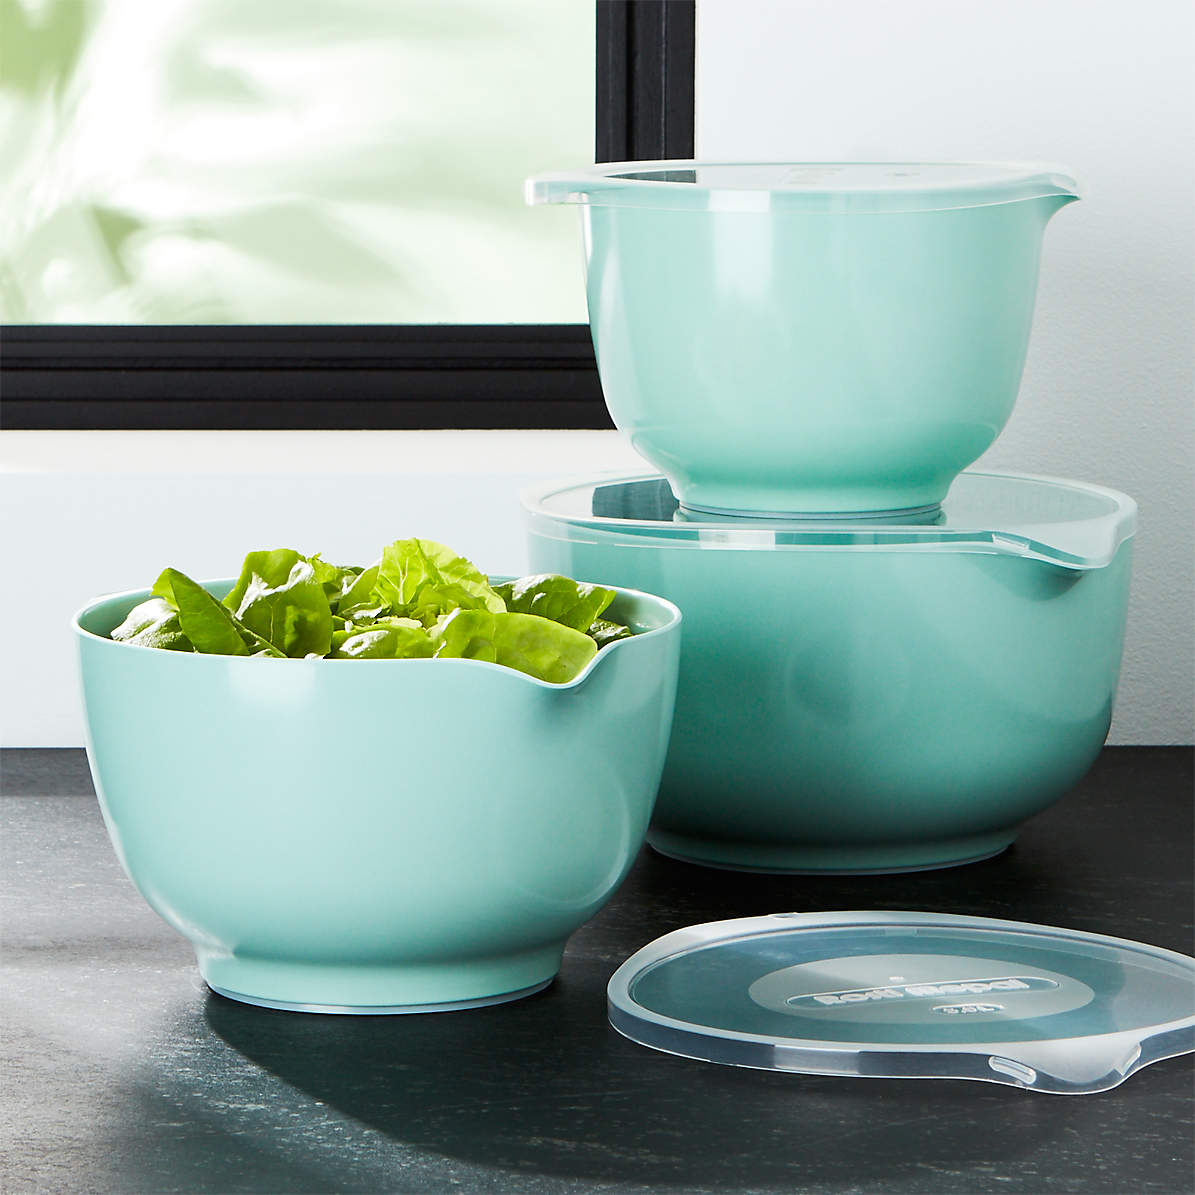 Rosti Retro Green Melamine Mixing Bowls With Lids Set Reviews Crate And Barrel Canada